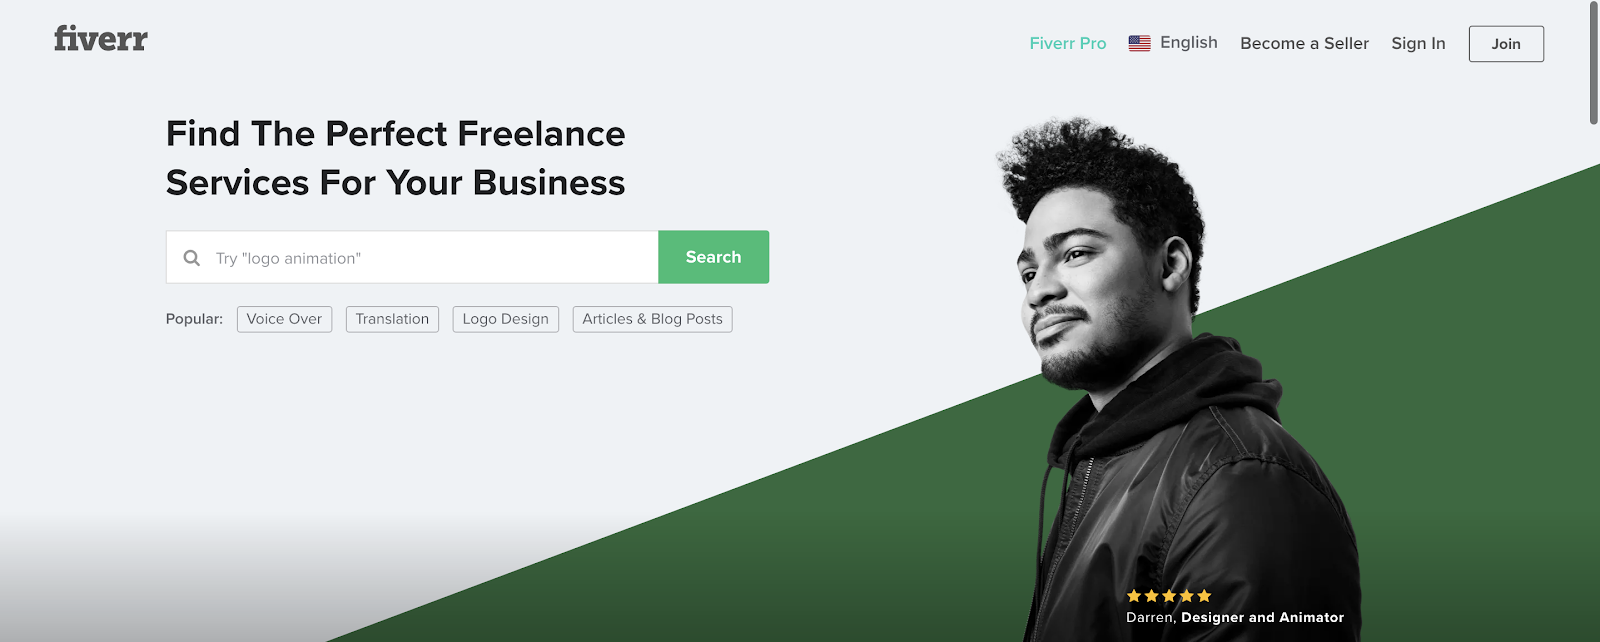 The Fiverr homepage lets businesspeople search for and hire website designers, developers, graphic designers, and more.